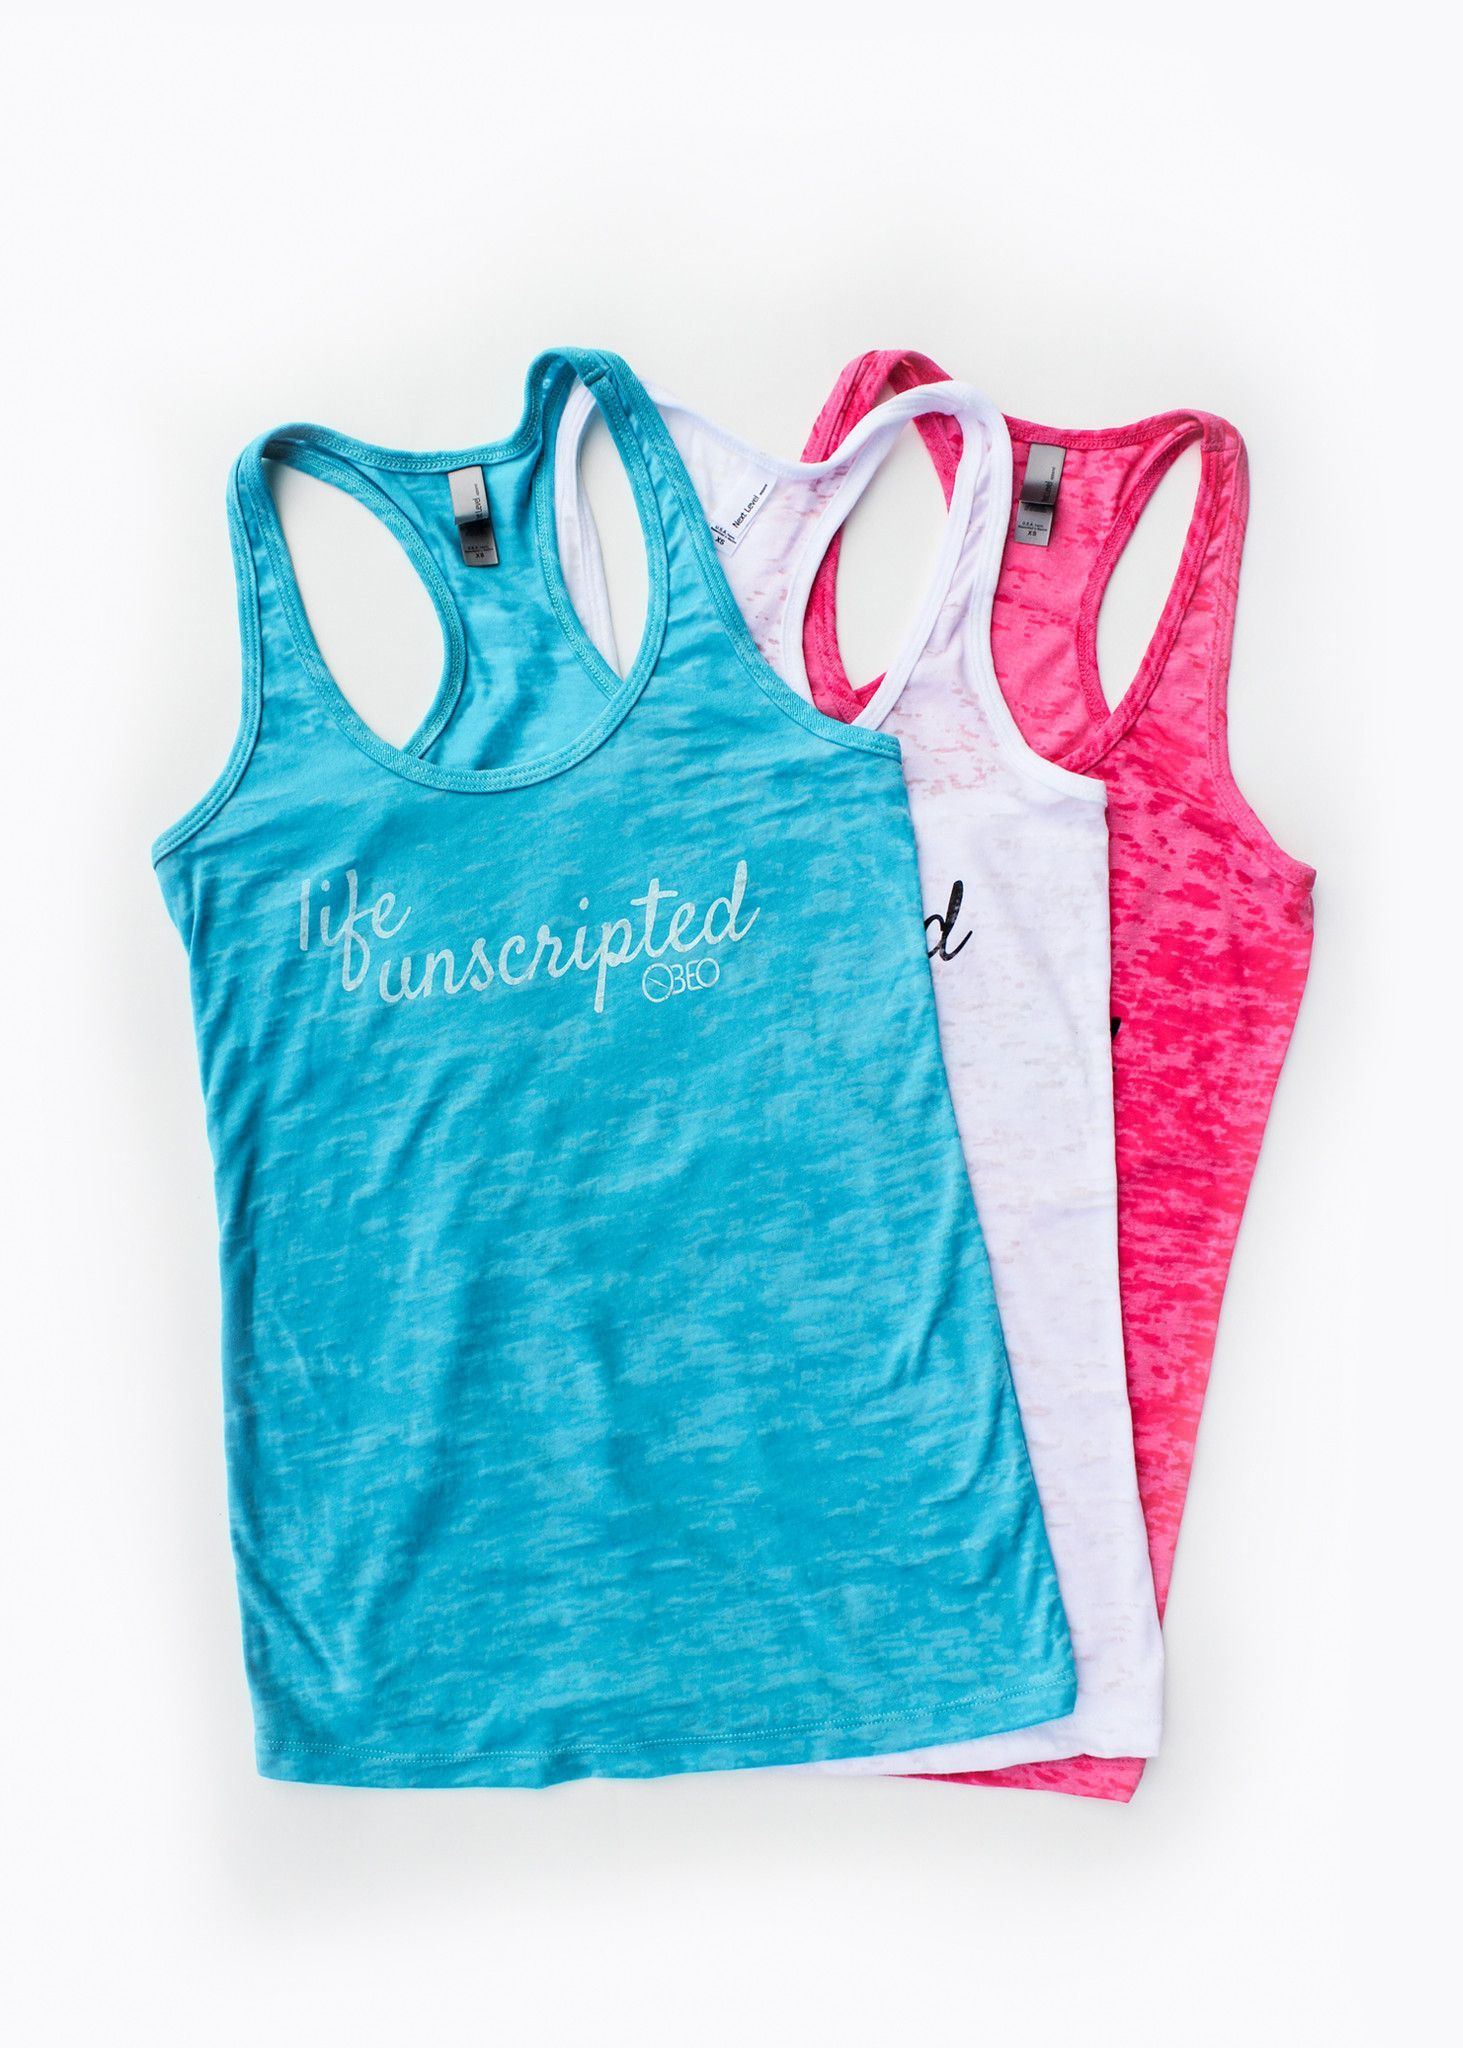 Life Unscripted Burnout Tank - 3 colors available